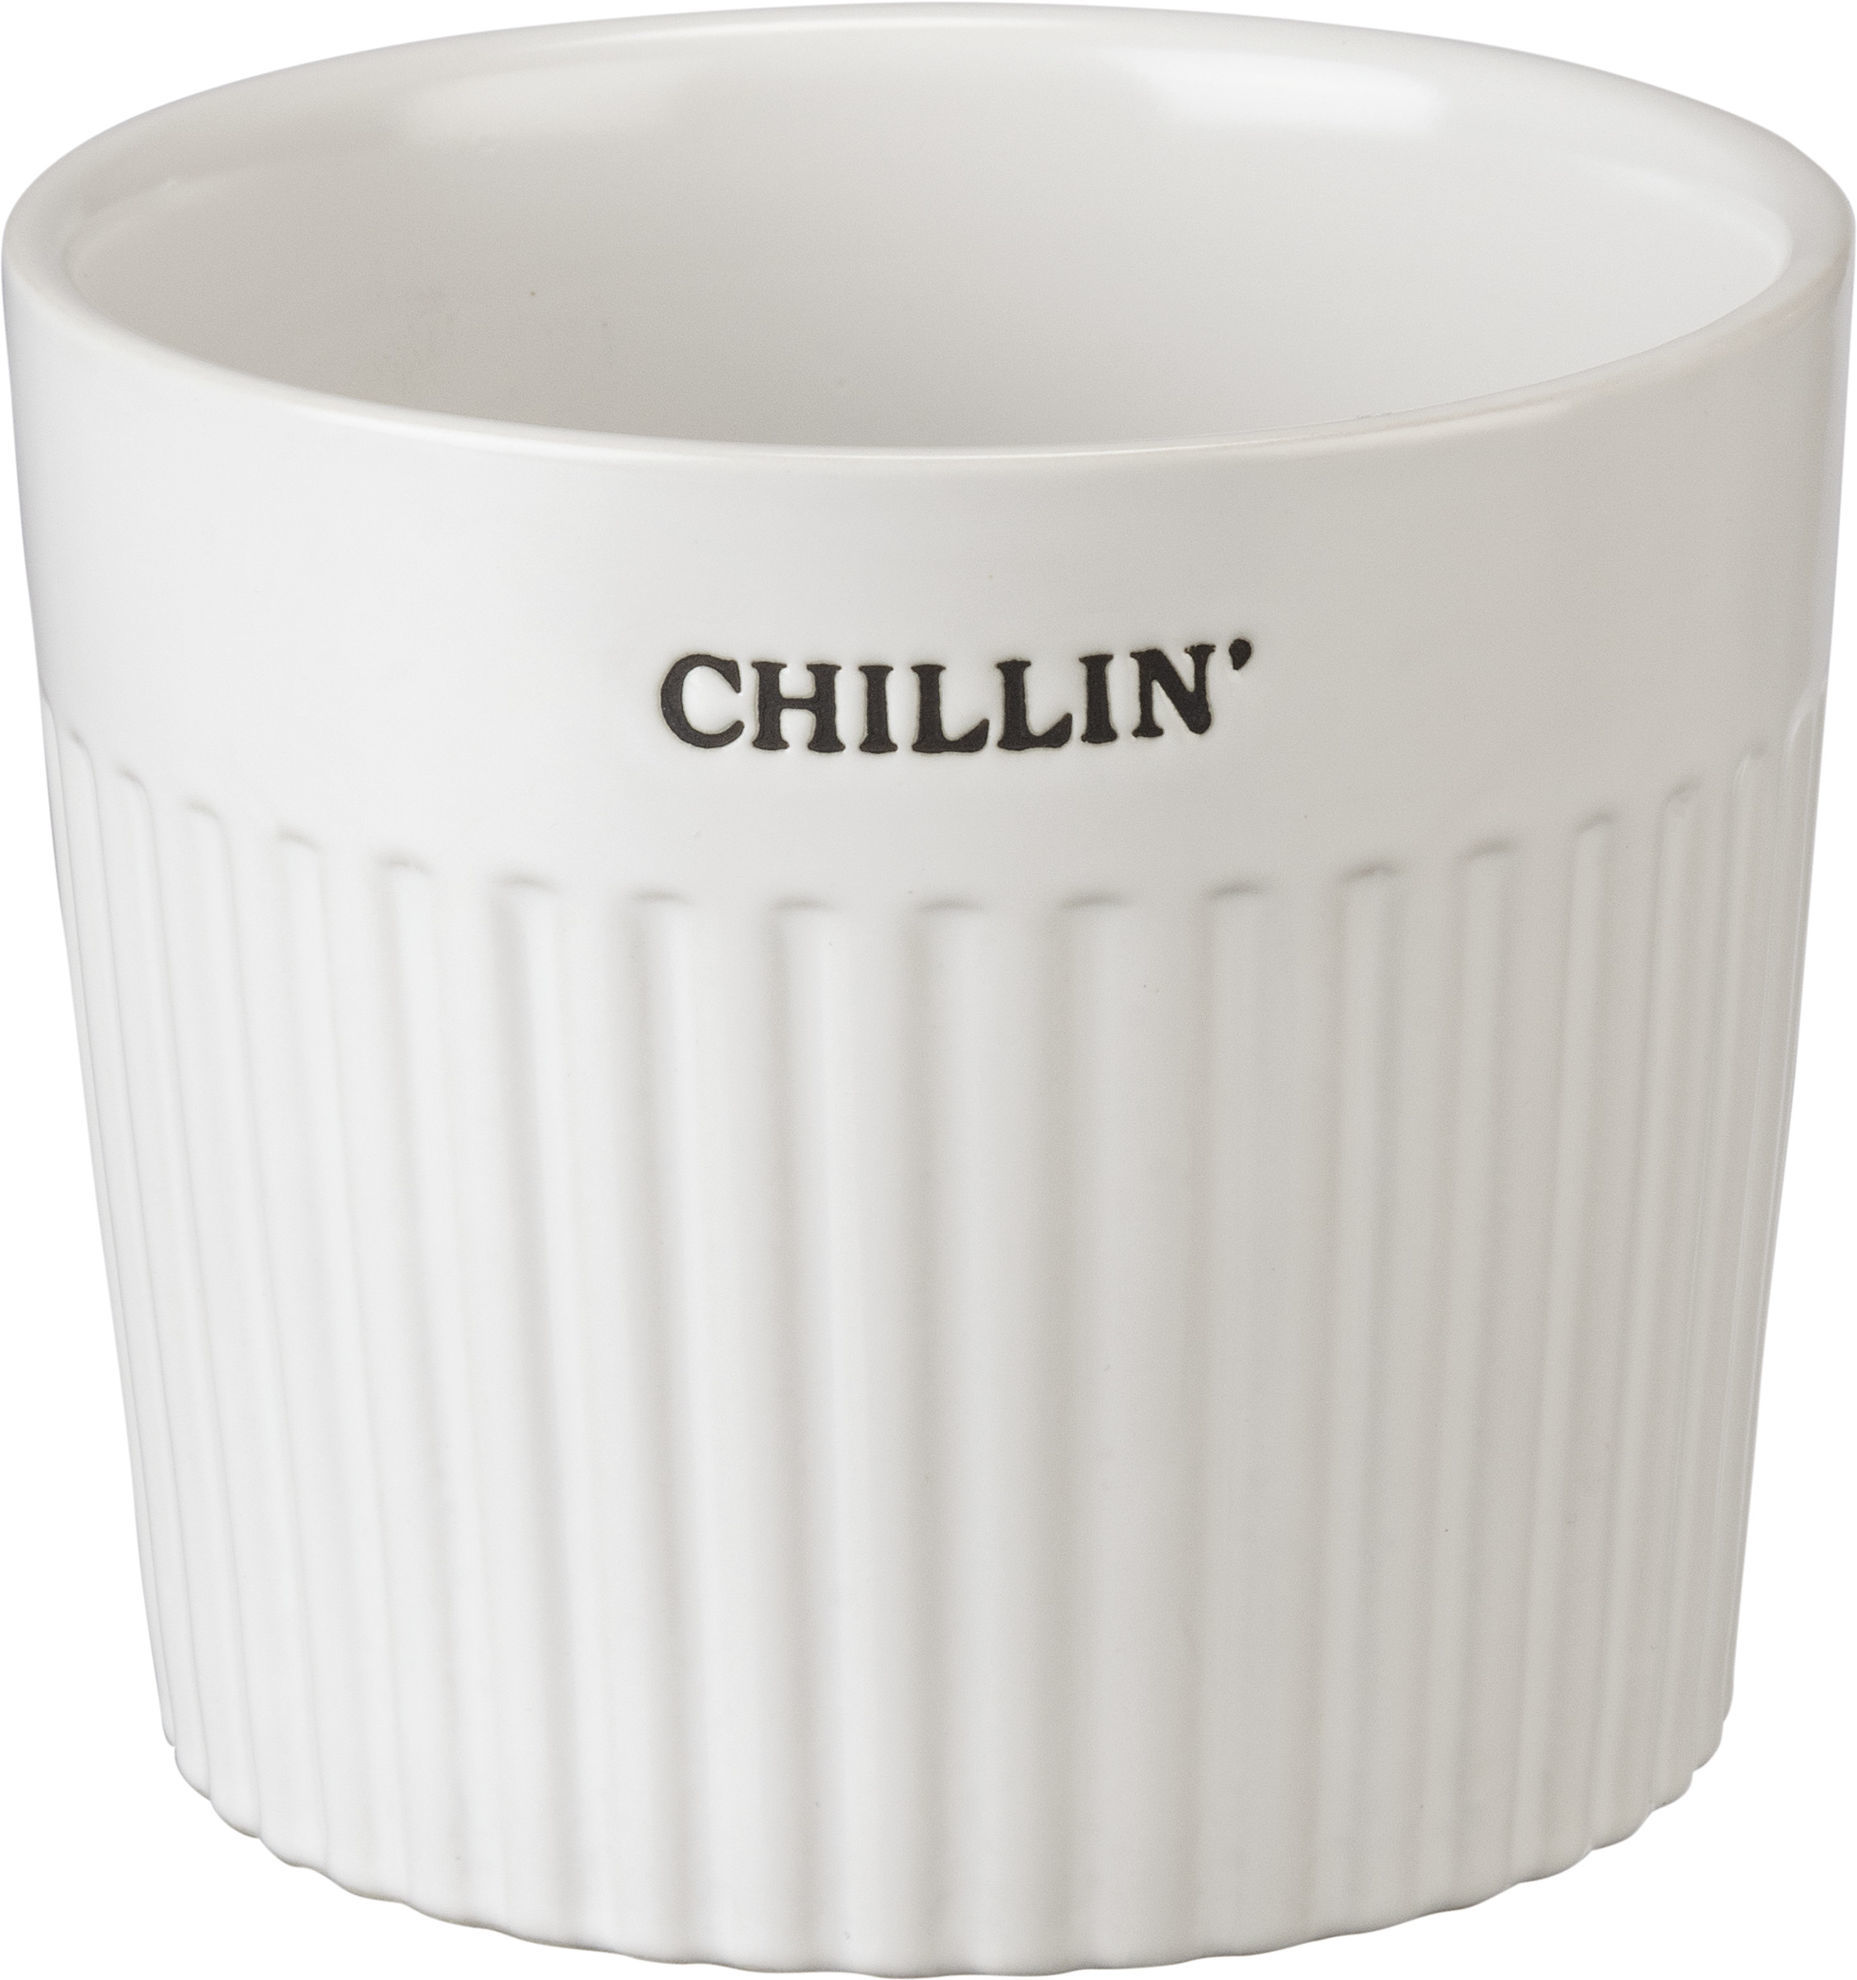 Dip Chiller - Chillin' by Primitives by Kathy